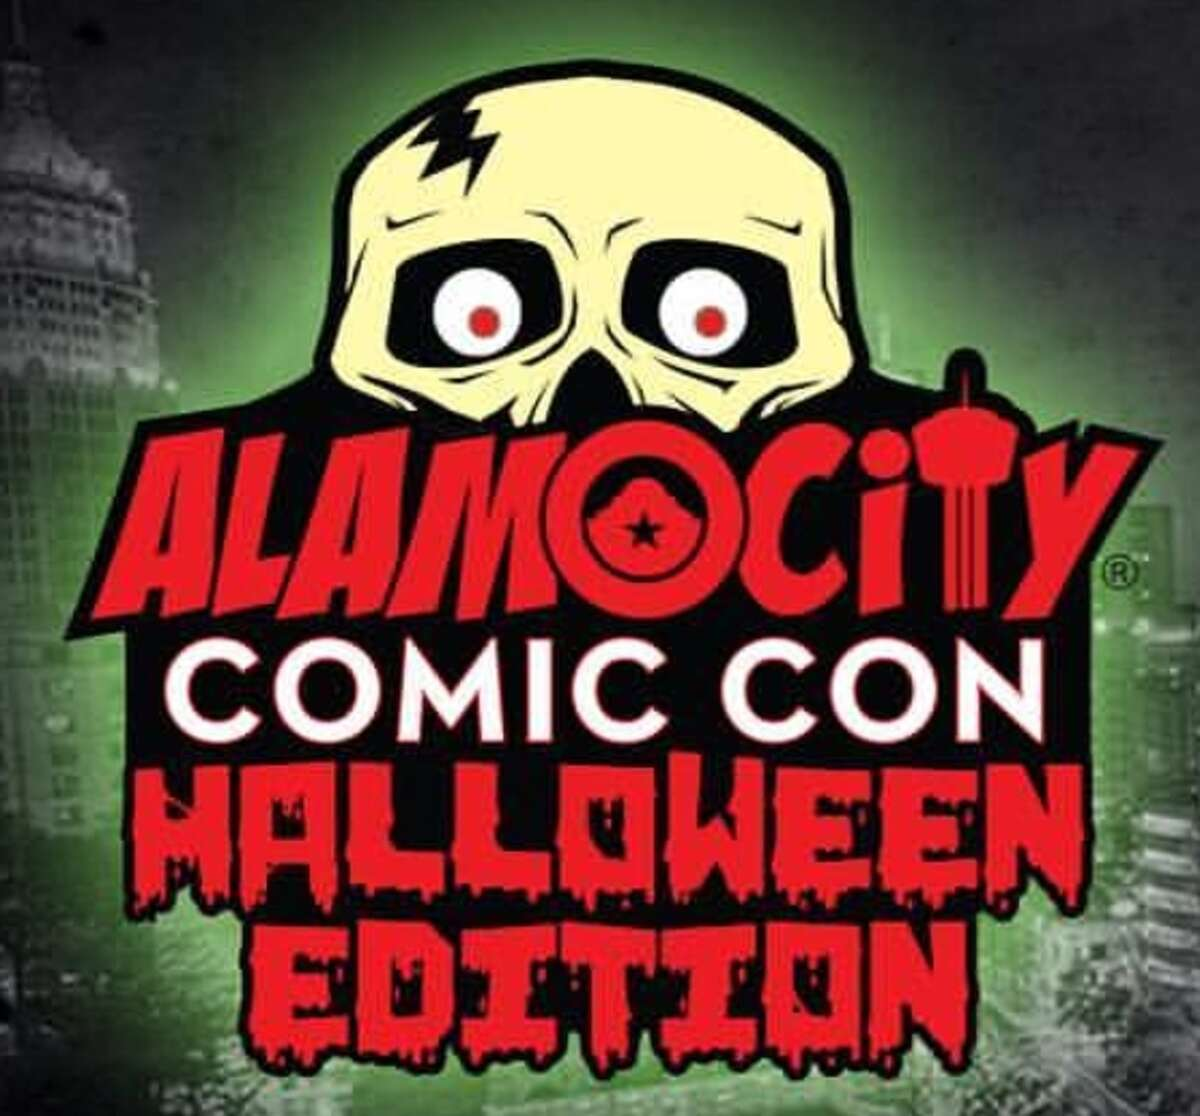 Alamo City Comic Con Halloween Edition previously was Terror Expo. This year, the name has changed and it will run in October.